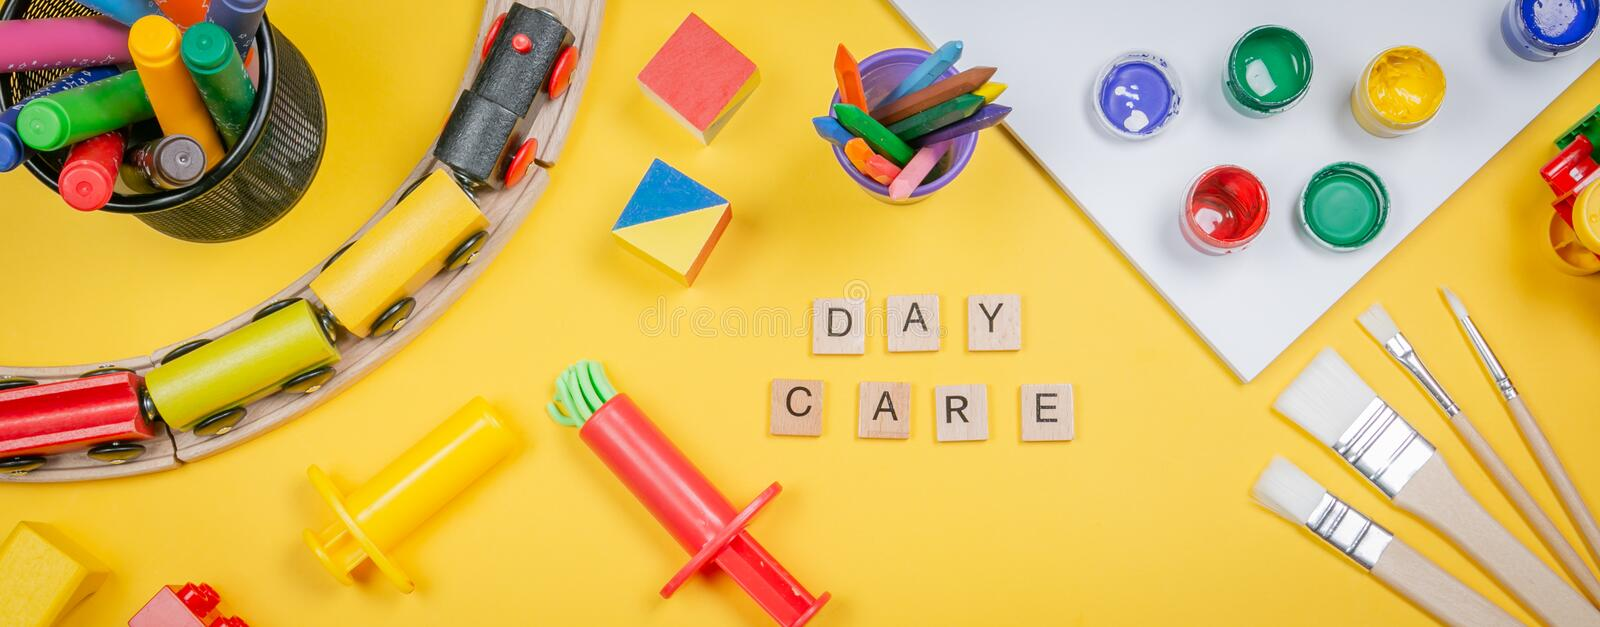 Day care concept - toy and art supply royalty free stock image